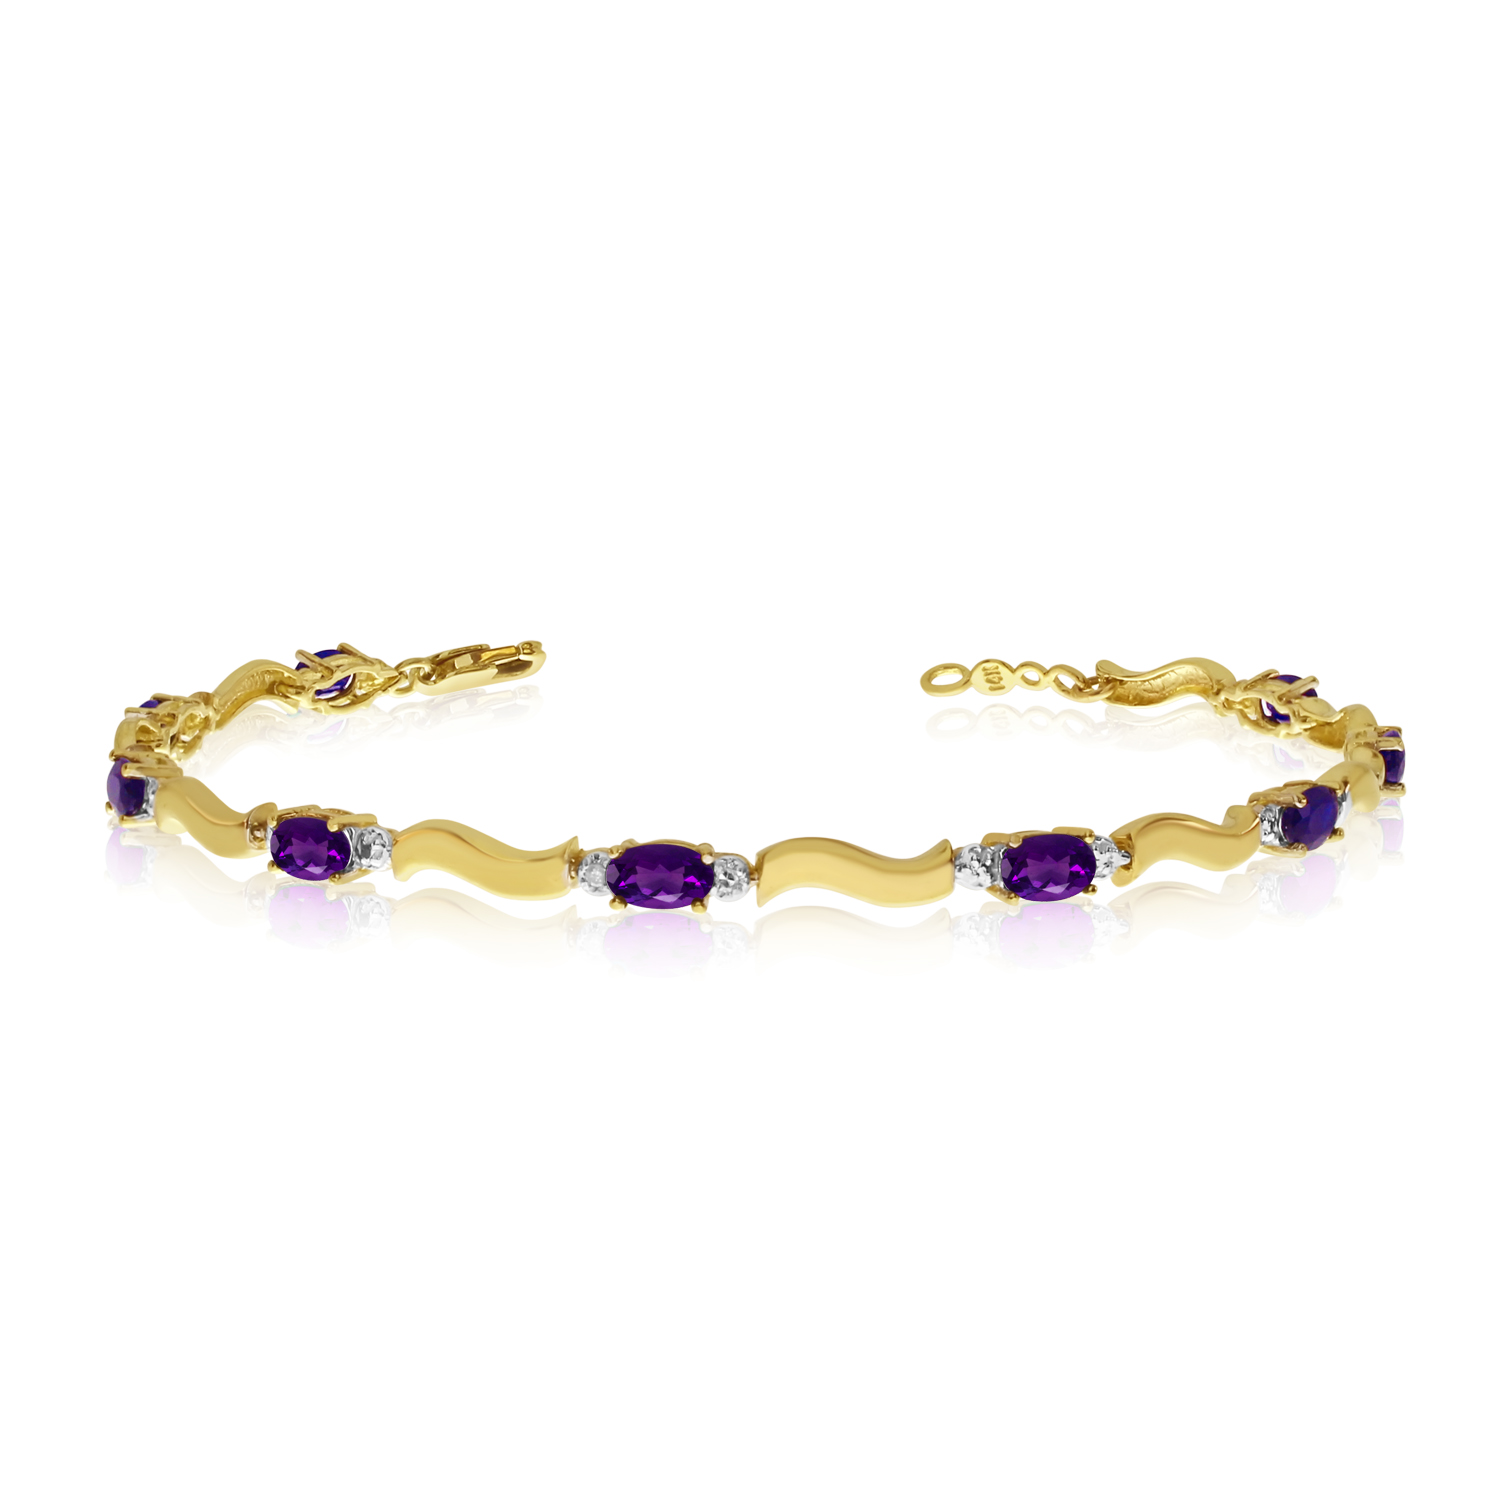 14K Yellow Gold Oval Amethyst and Diamond Bracelet by